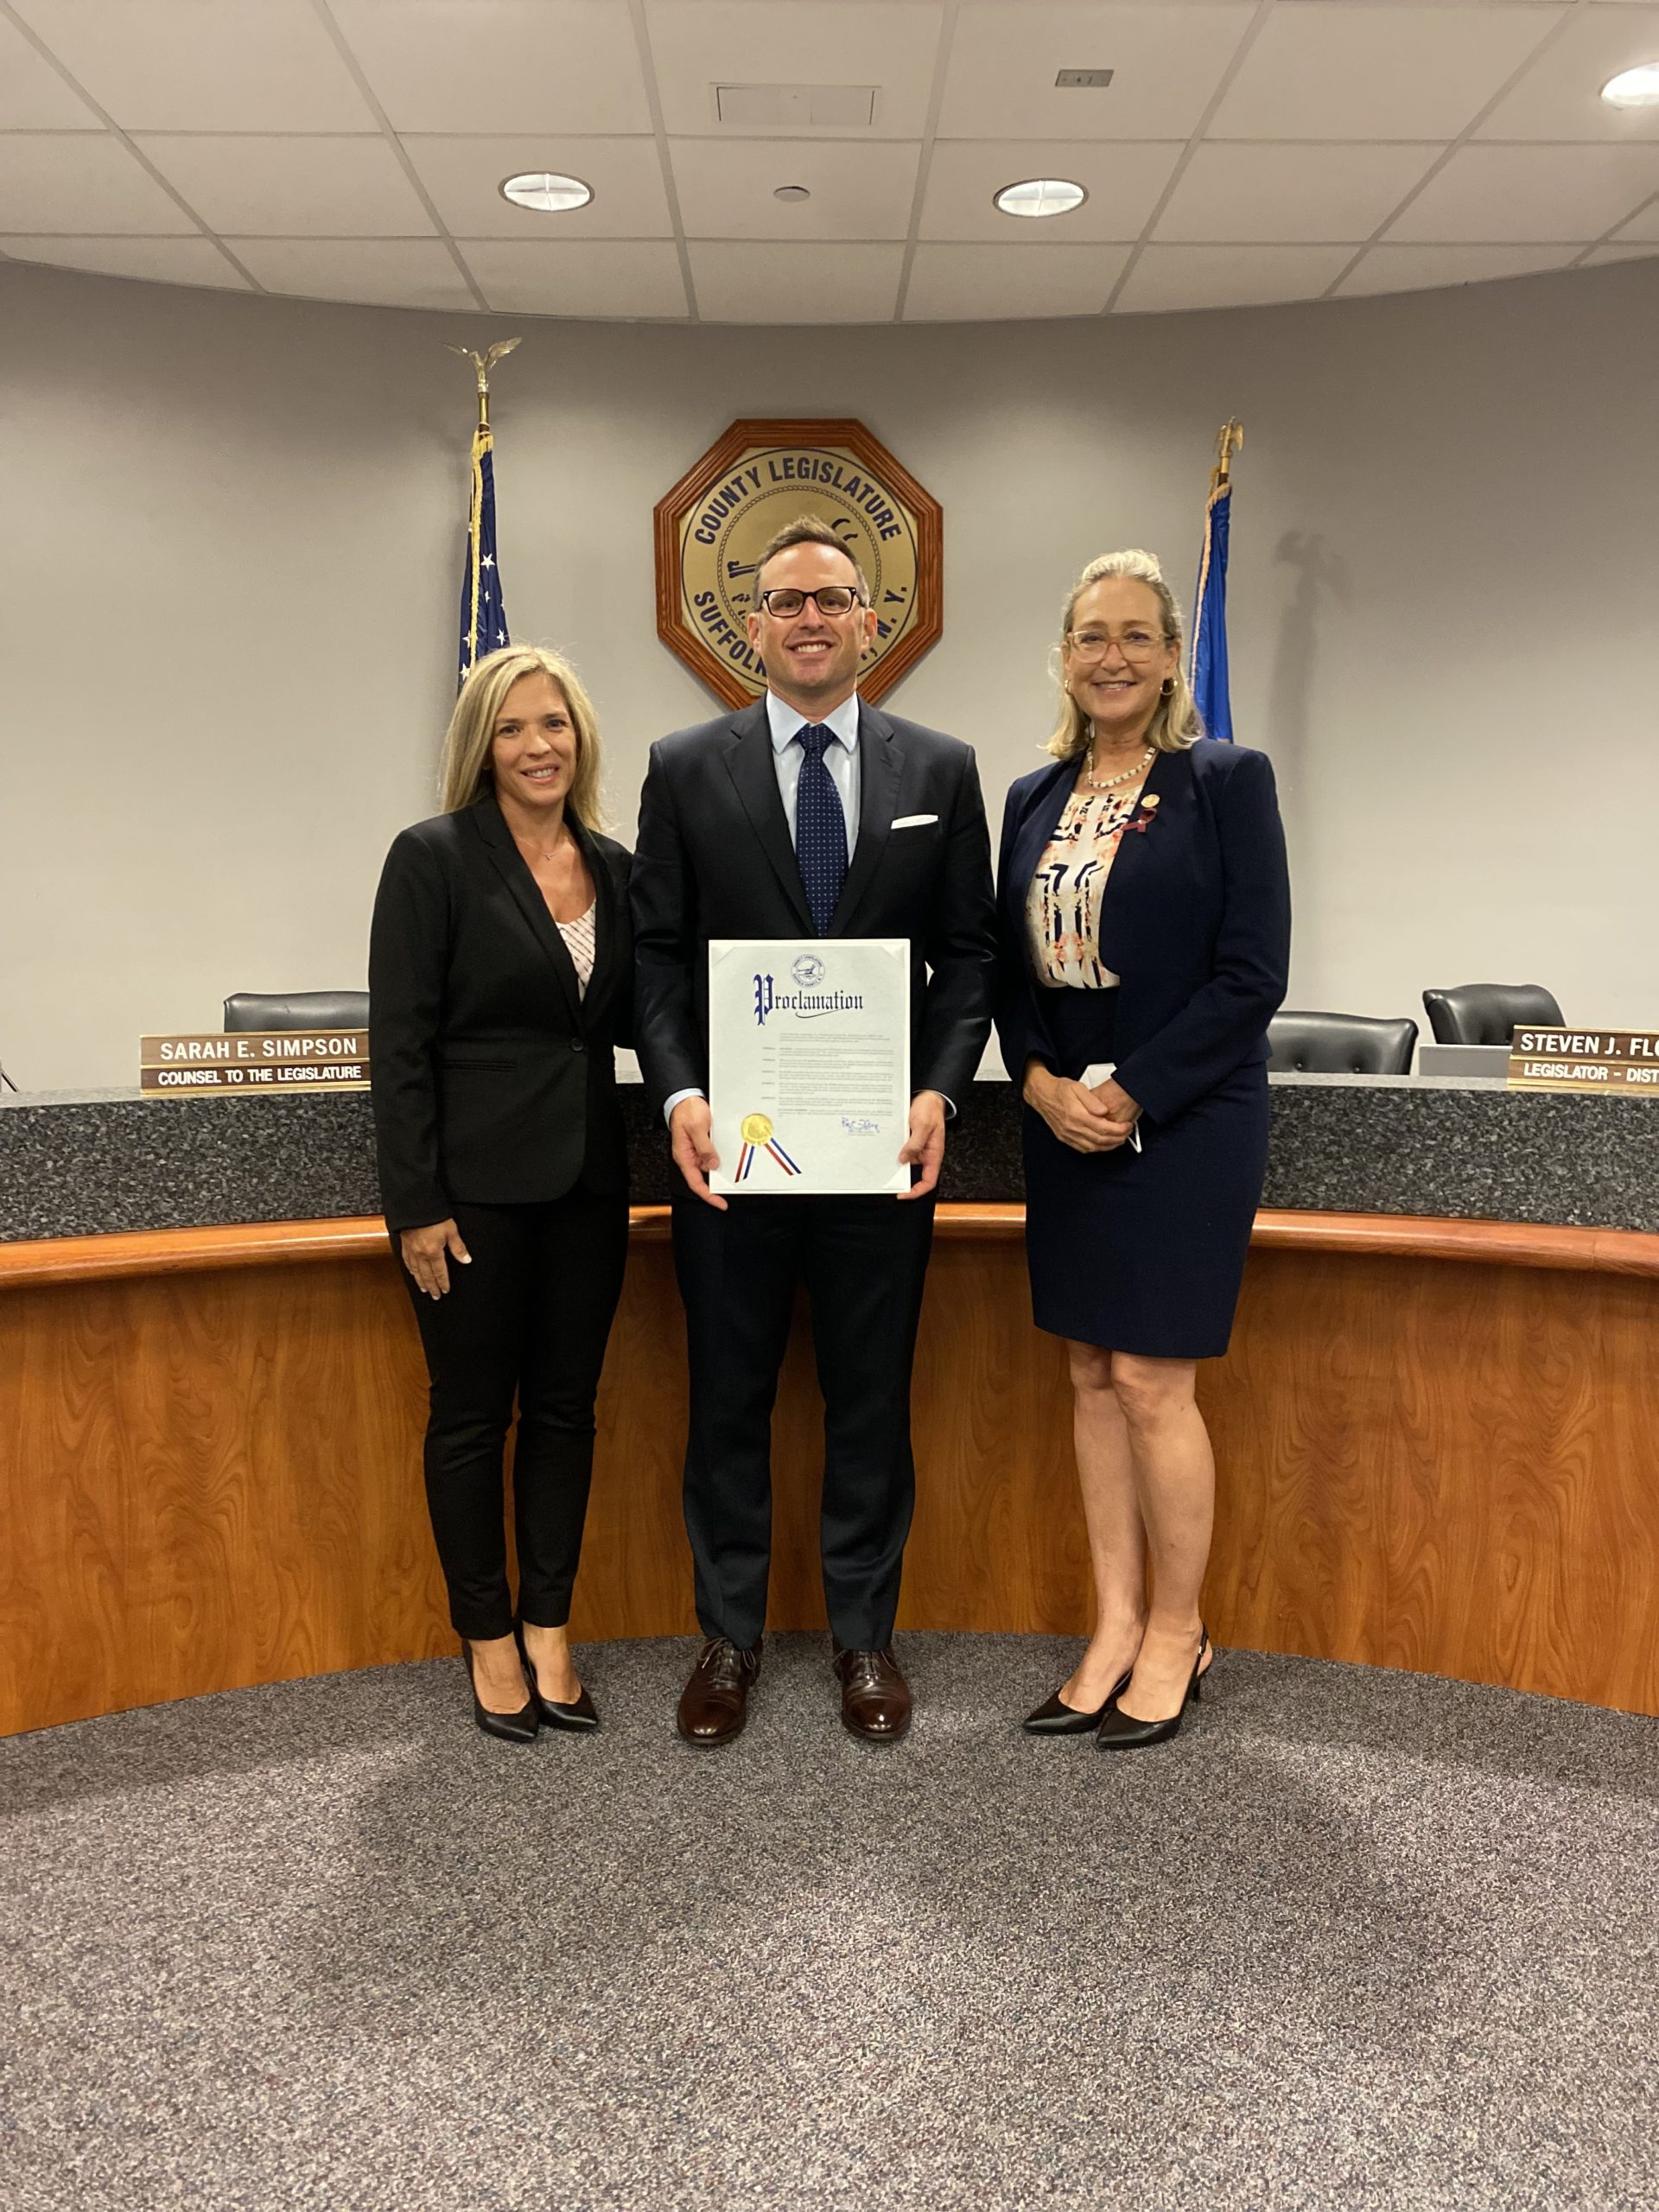 Suffolk County Legislator Bridget Fleming, right, presented Seth Korbin with a proclamation for his heroic action. At the presentation was Dr. Korbin's wife, Heidi, left.